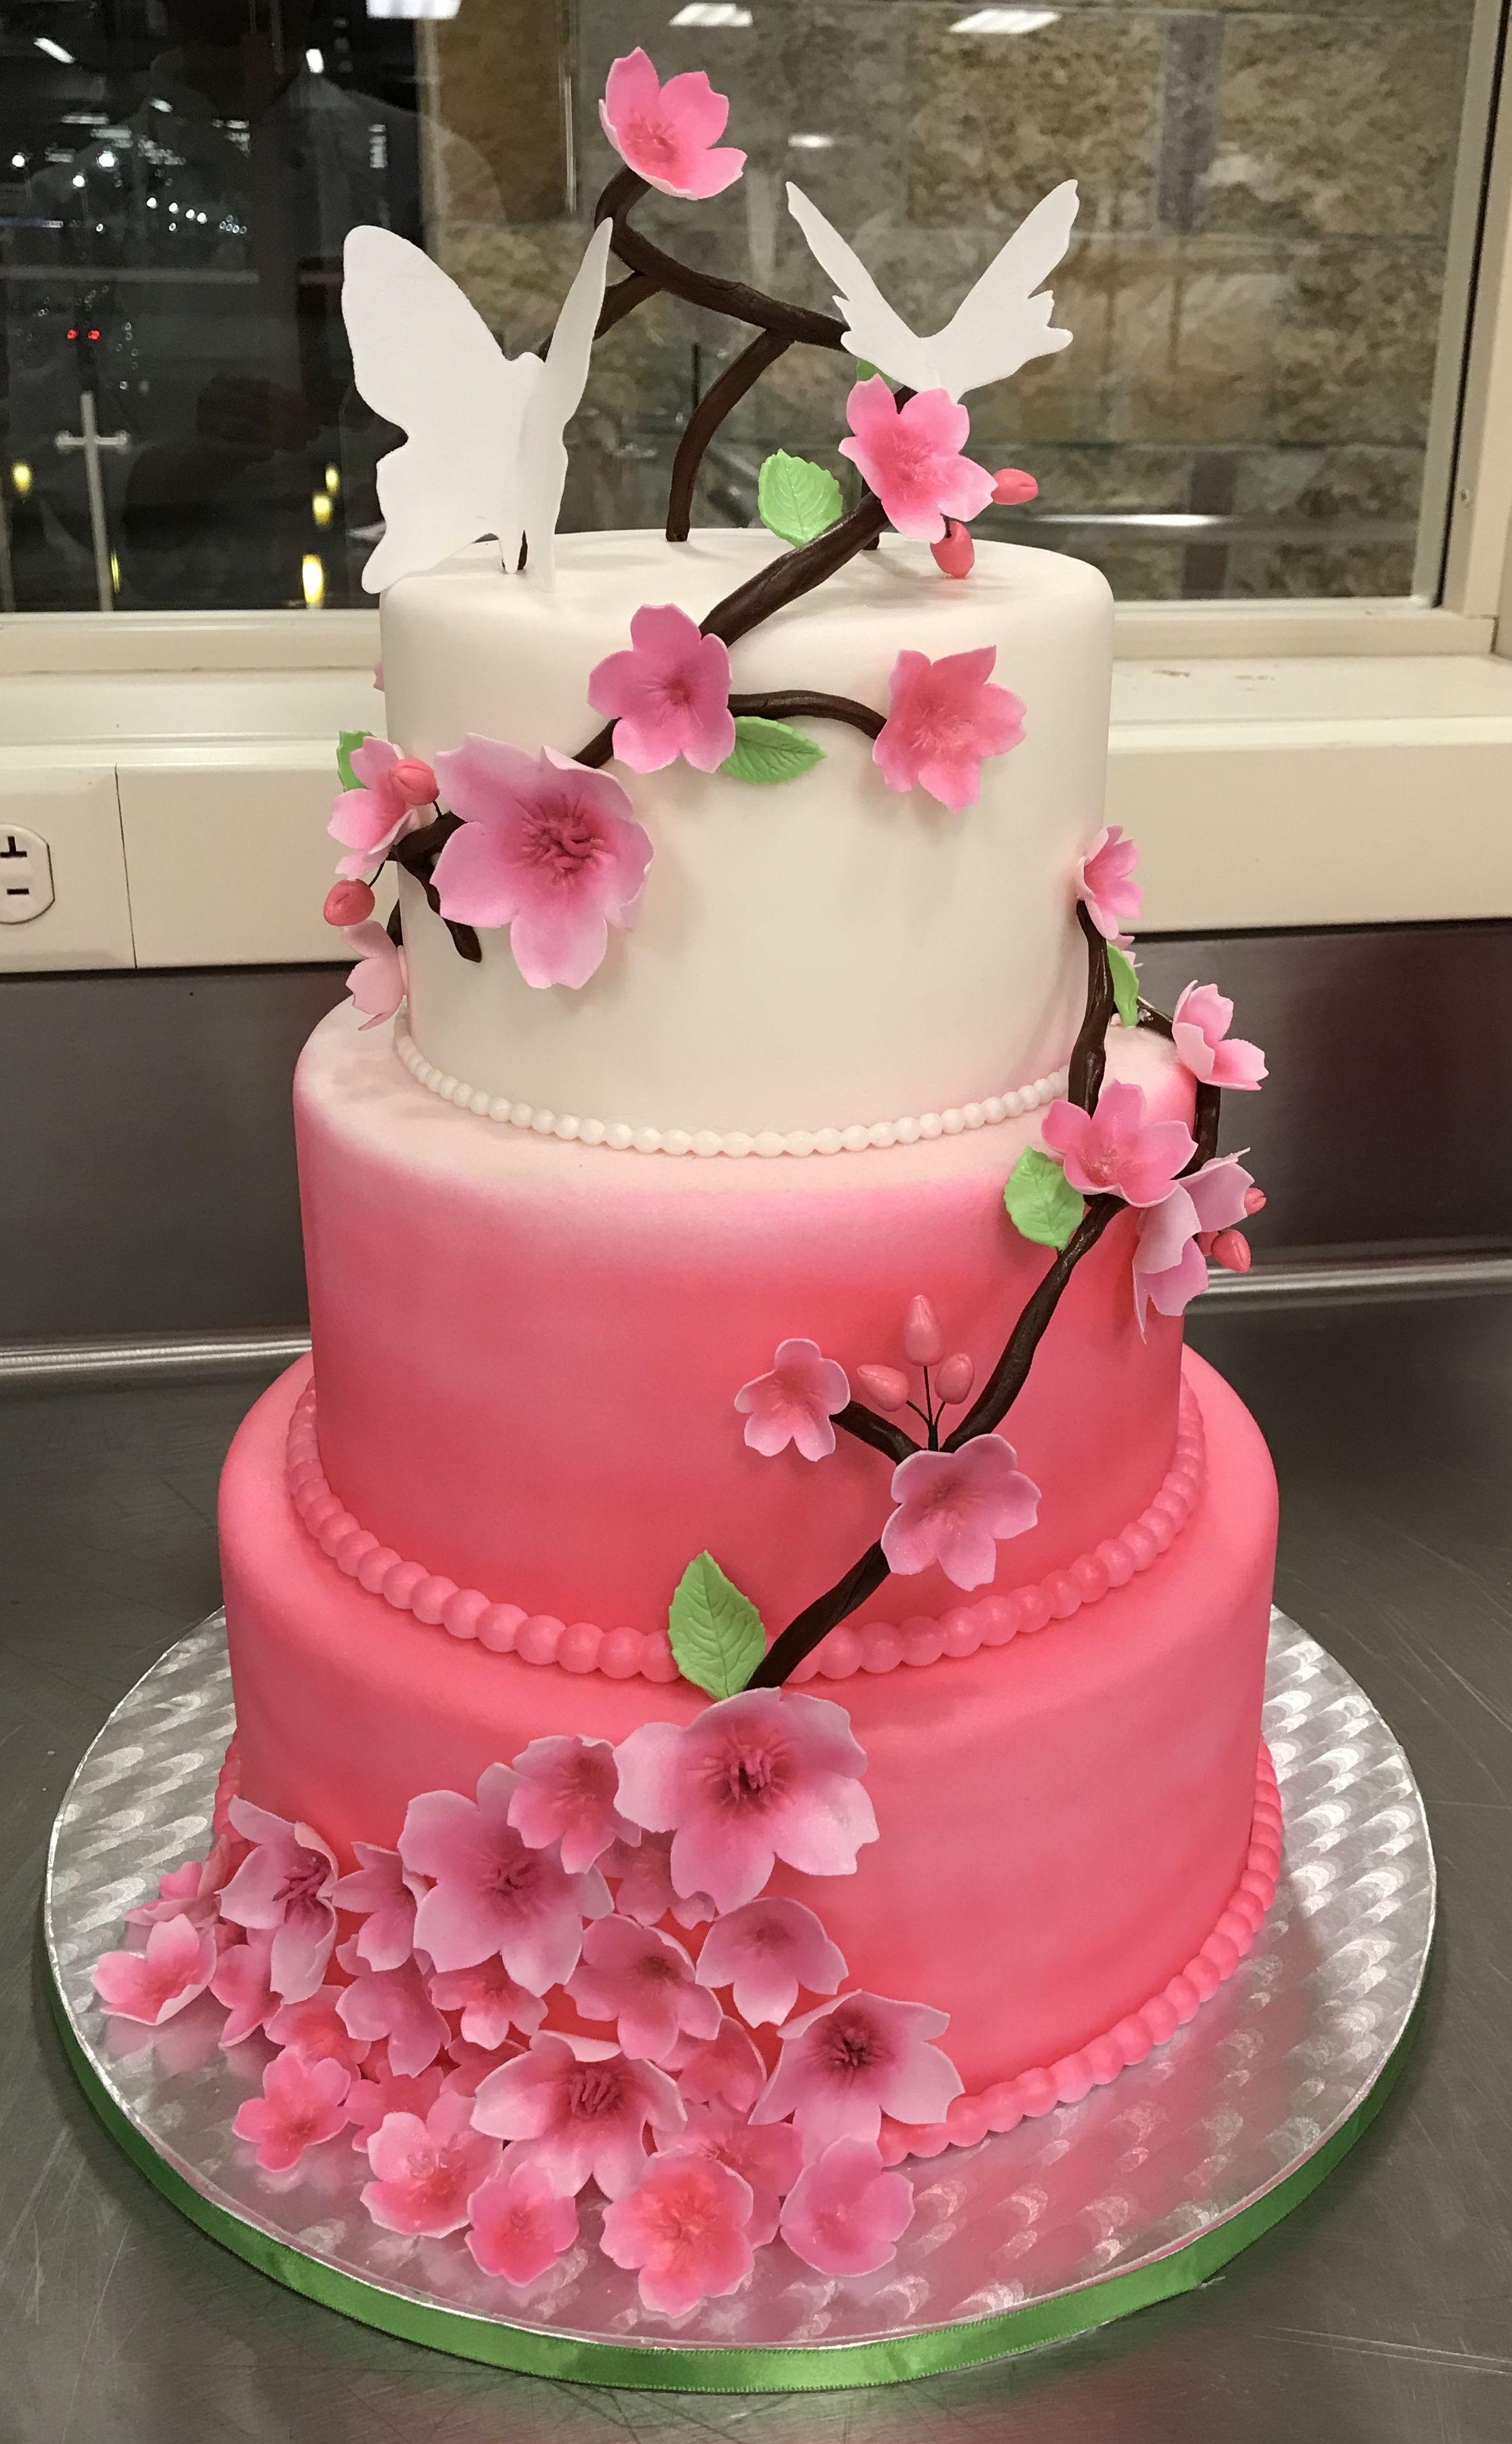 Wedding Cake With Cherry Blossoms And Butterfly Toppers Japanese